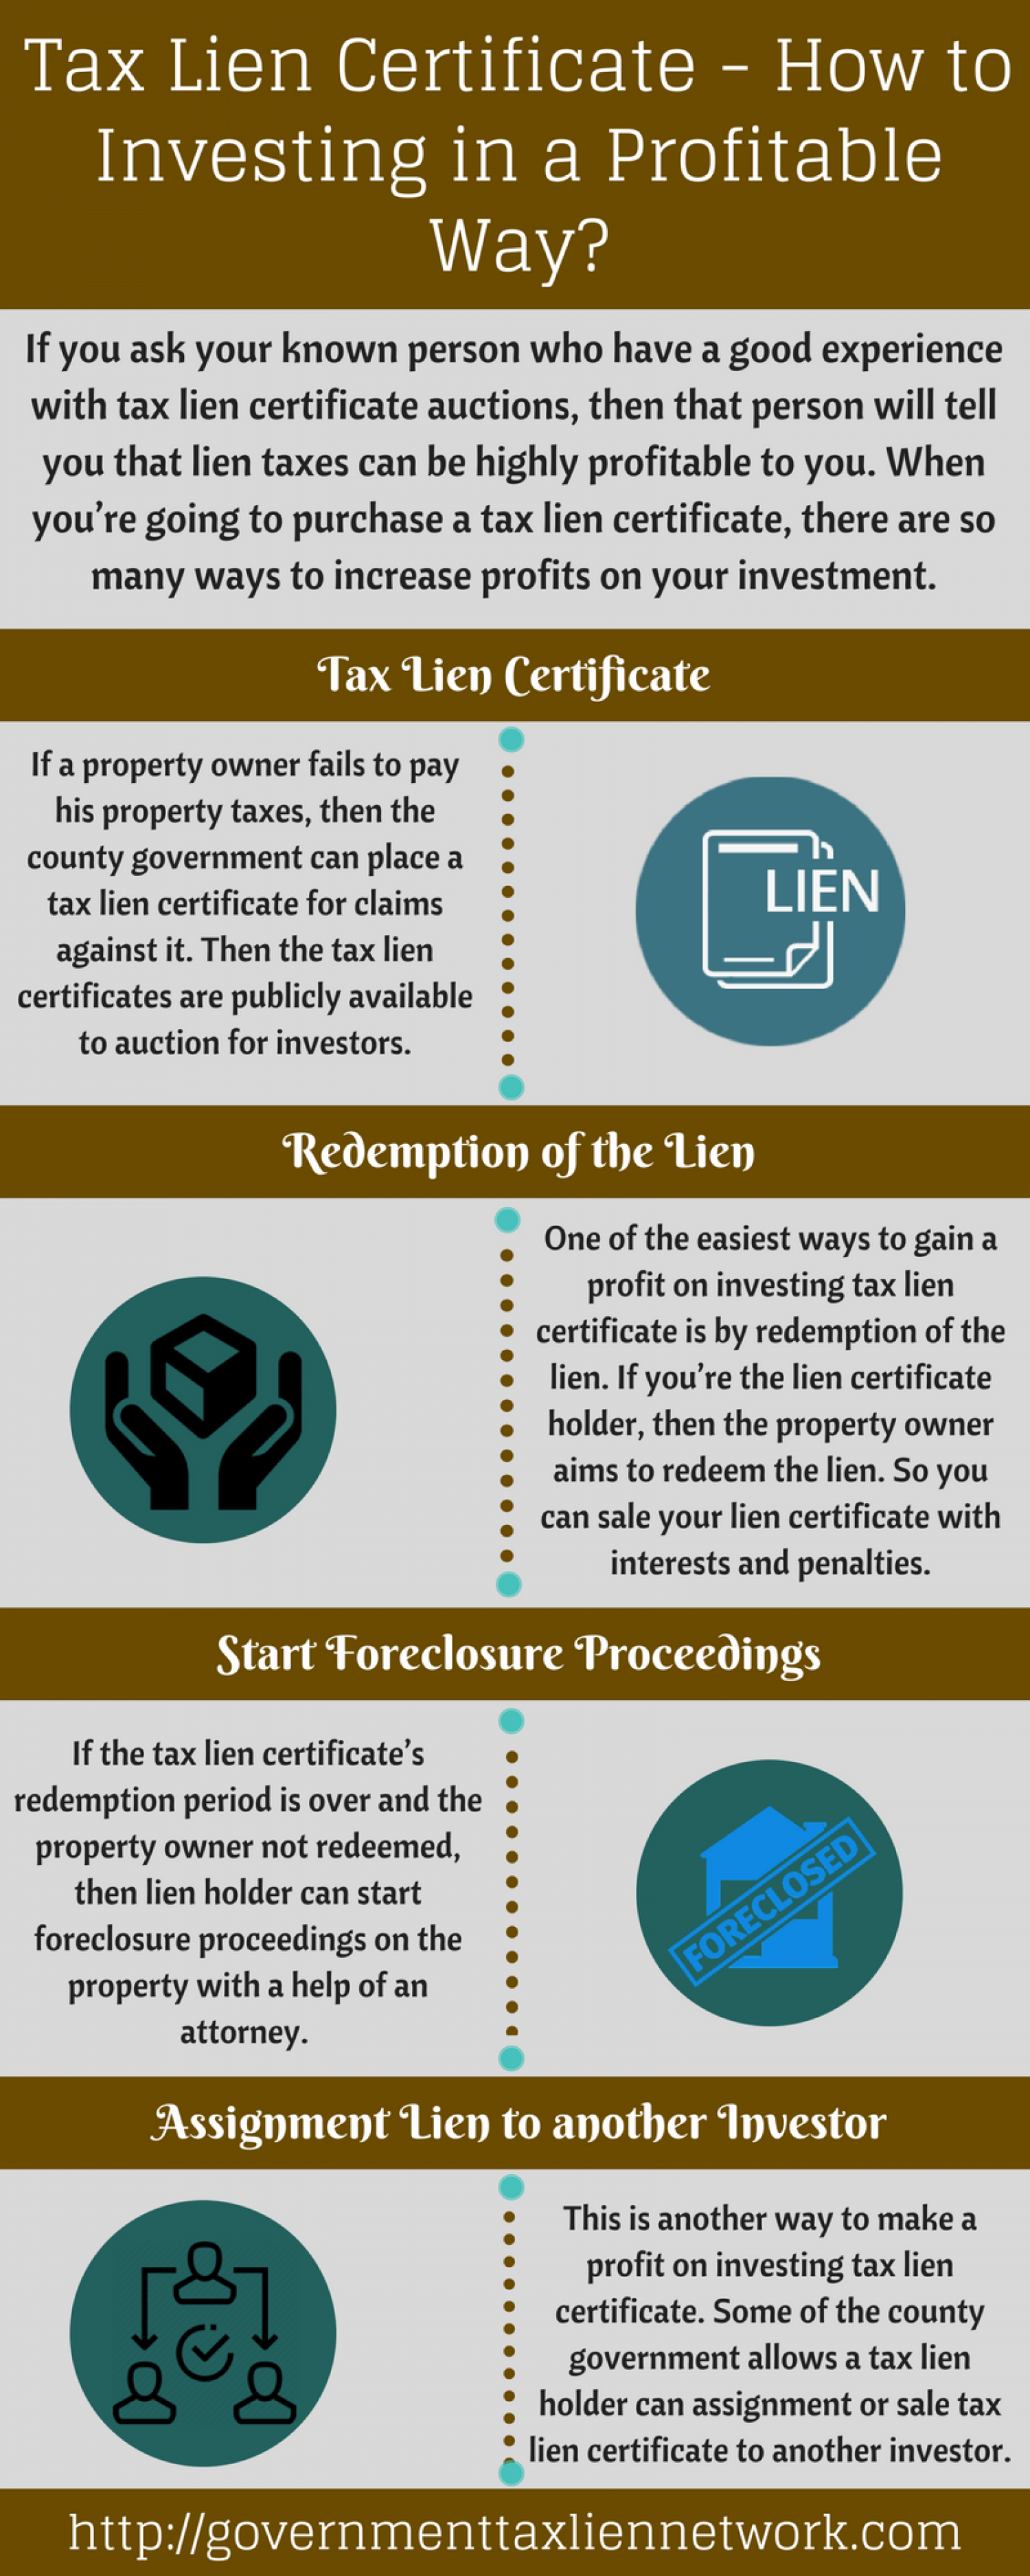 Tax Lien Certificate - How to Investing in a Profitable Way?